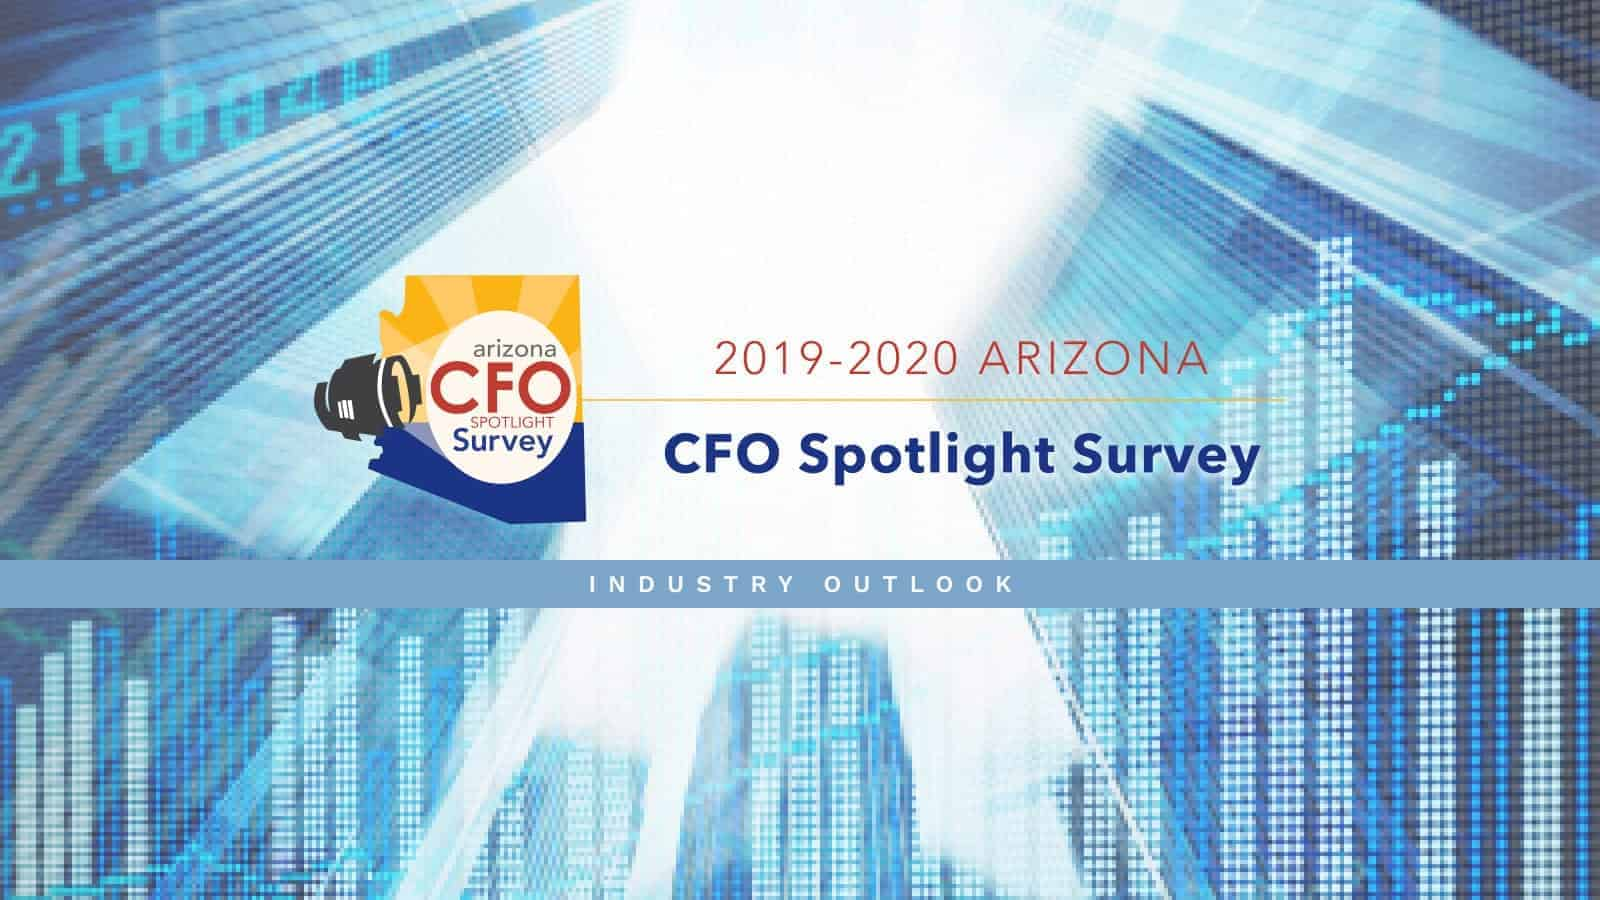 2019-2020 Arizona CFO Spotlight Survey Industry Outlook